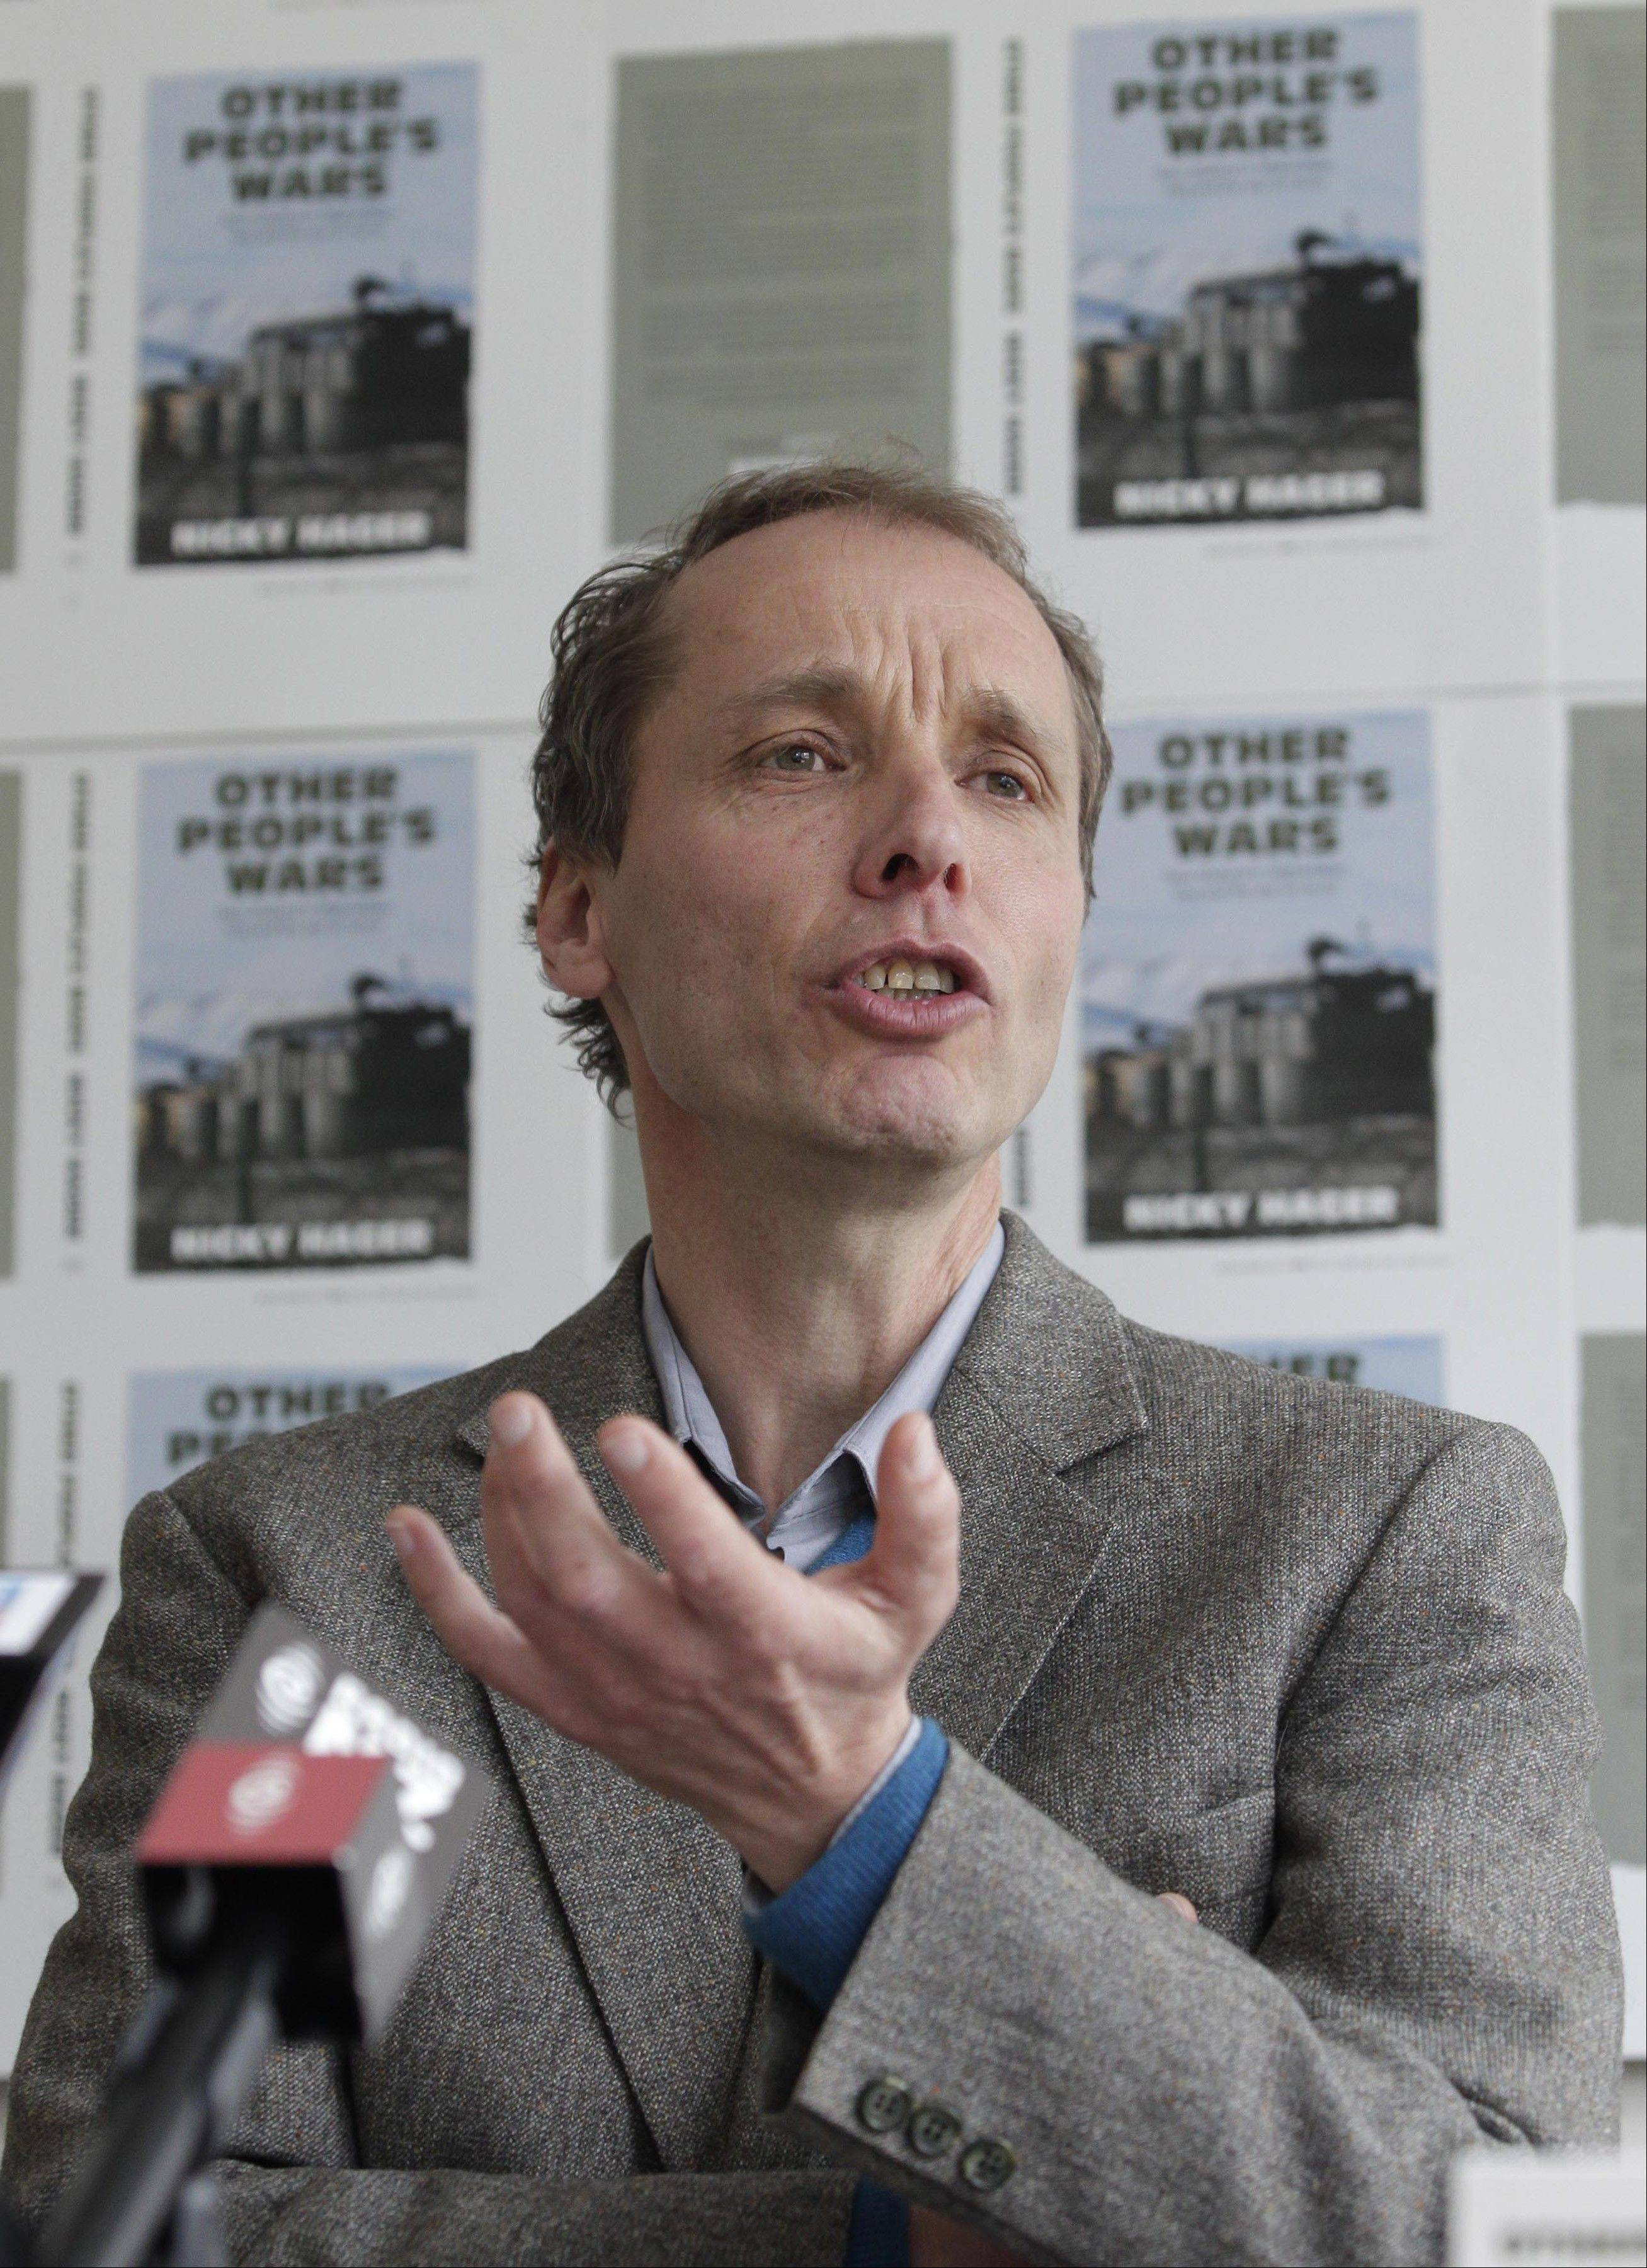 In this Sept. 1, 2011 photo, author Nicky Hager speaks during a news conference in Wellington. A report in the Sunday Star-Times newspaper said that the New Zealand military, assisted by U.S. spy agencies, collected phone metadata to monitor New Zealand�s journalist Jon Stephenson. New Zealand said Monday, July 29, 2013, there is no evidence that either the U.S. or the New Zealand military spied on journalist Stephenson in Afghanistan who was freelancing for American news organization McClatchy.